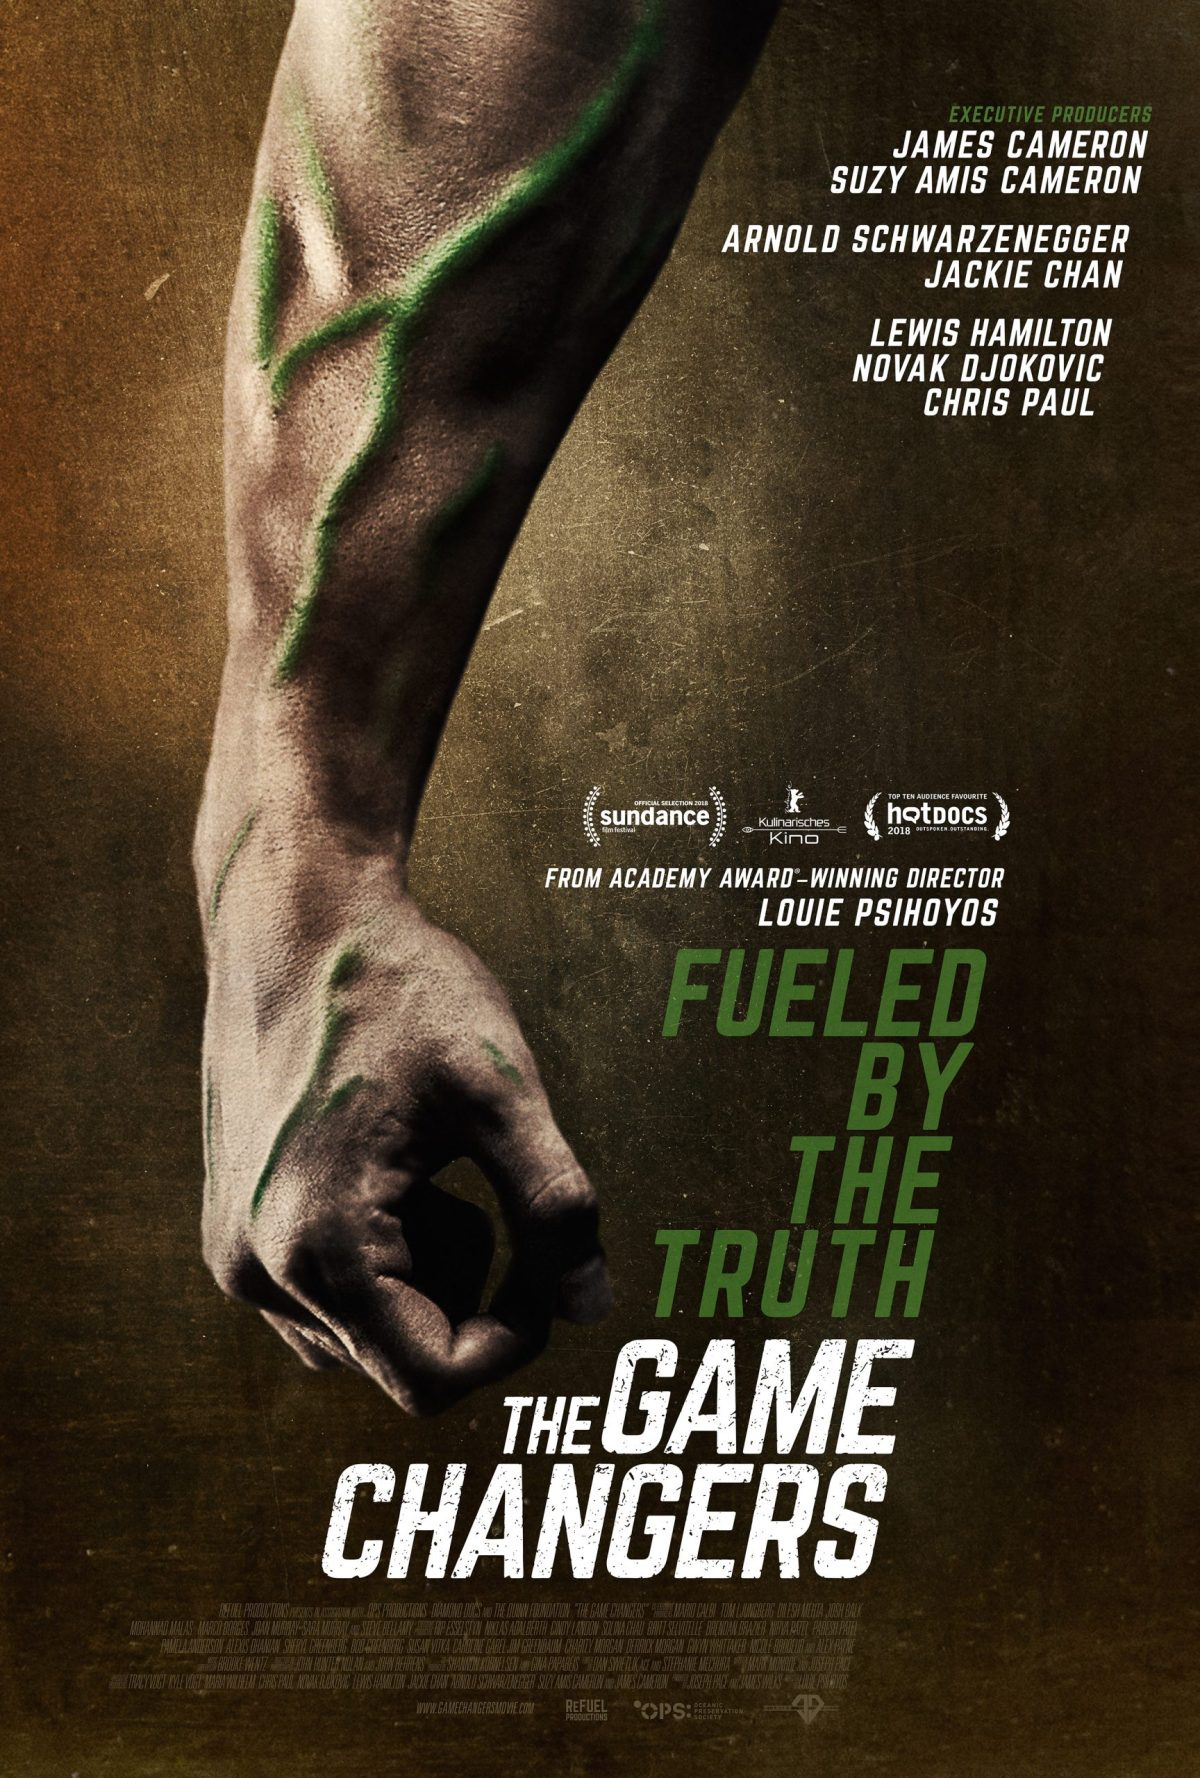 Documentary about a plant-based diet: The Gamechangers